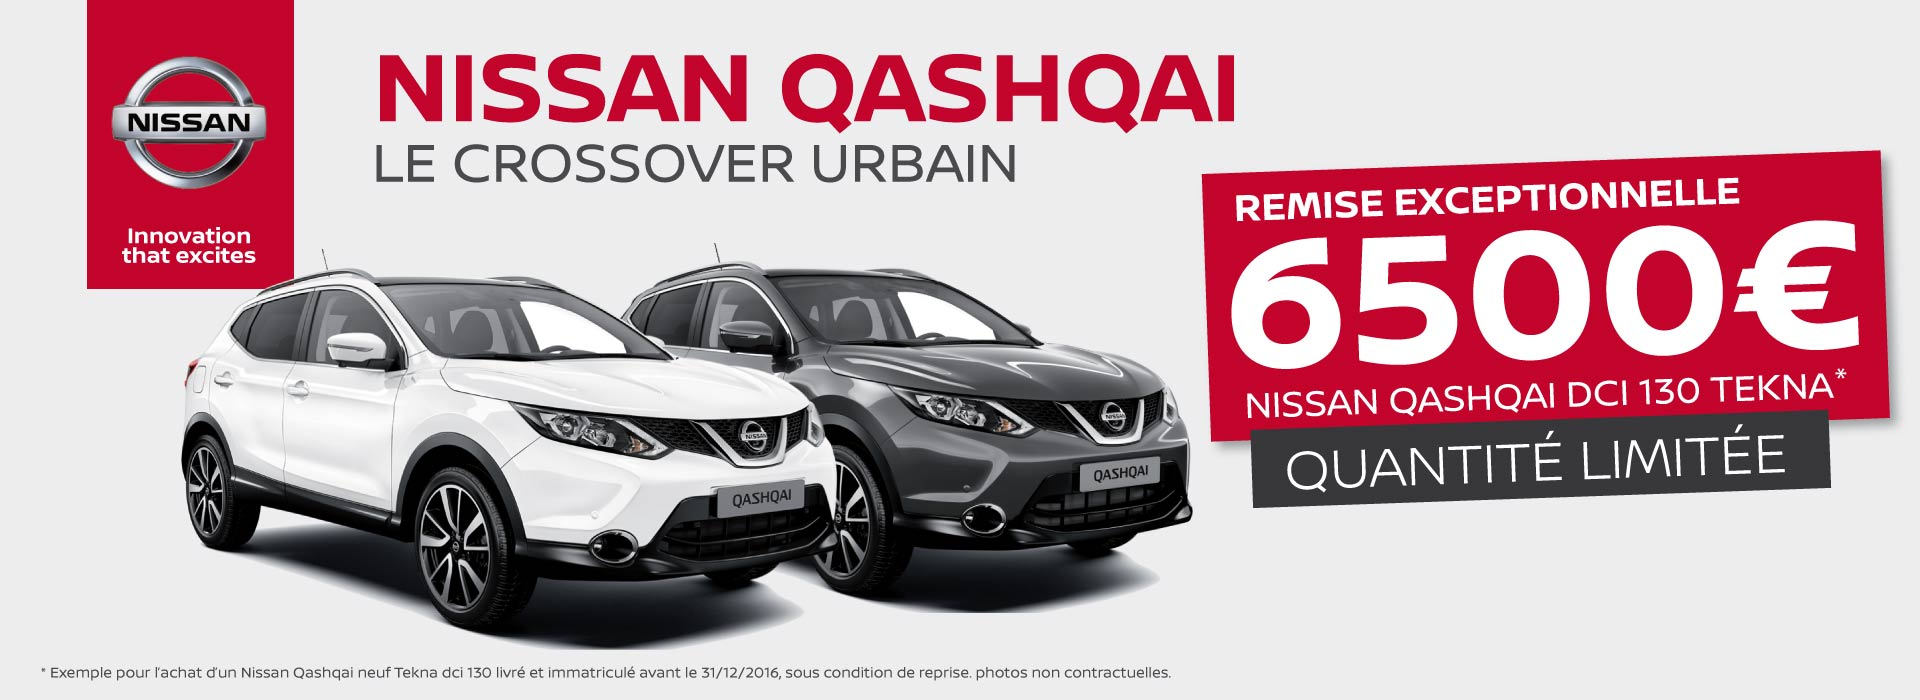 offre nissan qashqai nissan lille. Black Bedroom Furniture Sets. Home Design Ideas